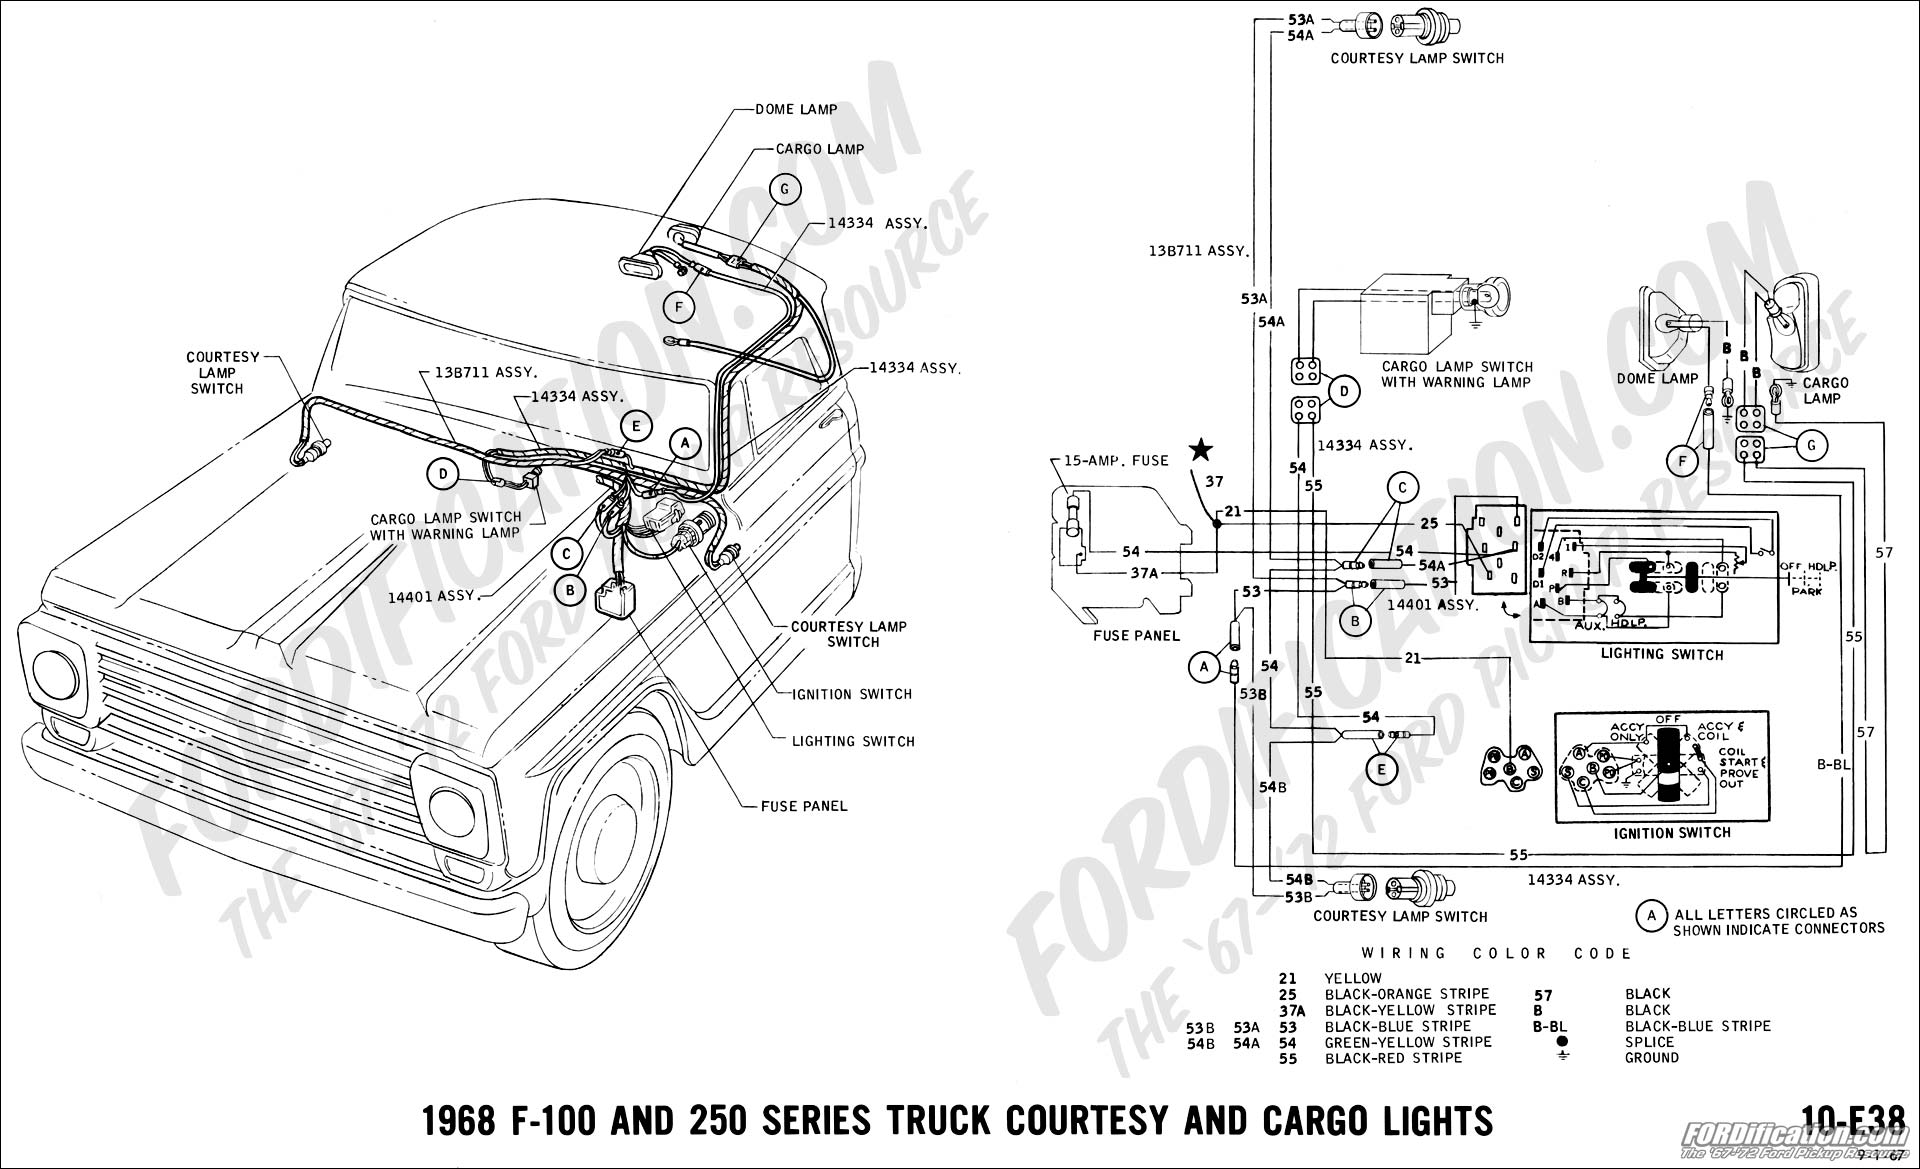 1970 F100 Ford Truck Wiring Diagrams Archive Of Automotive 1989 Mercury Tracer Diagram Technical Drawings And Schematics Section H Rh Fordification Com